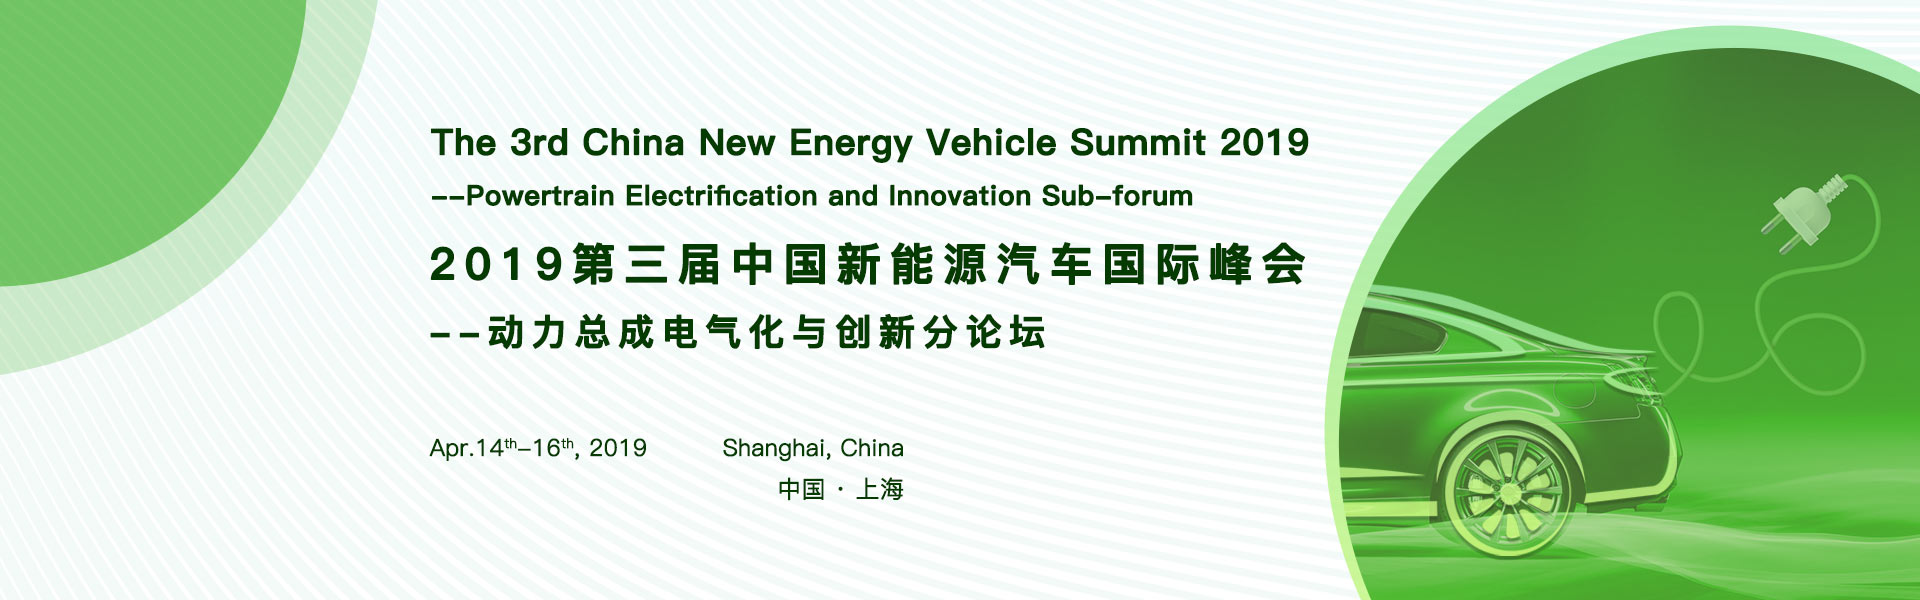 The 3rd China New Energy Vehicle Summit 2019